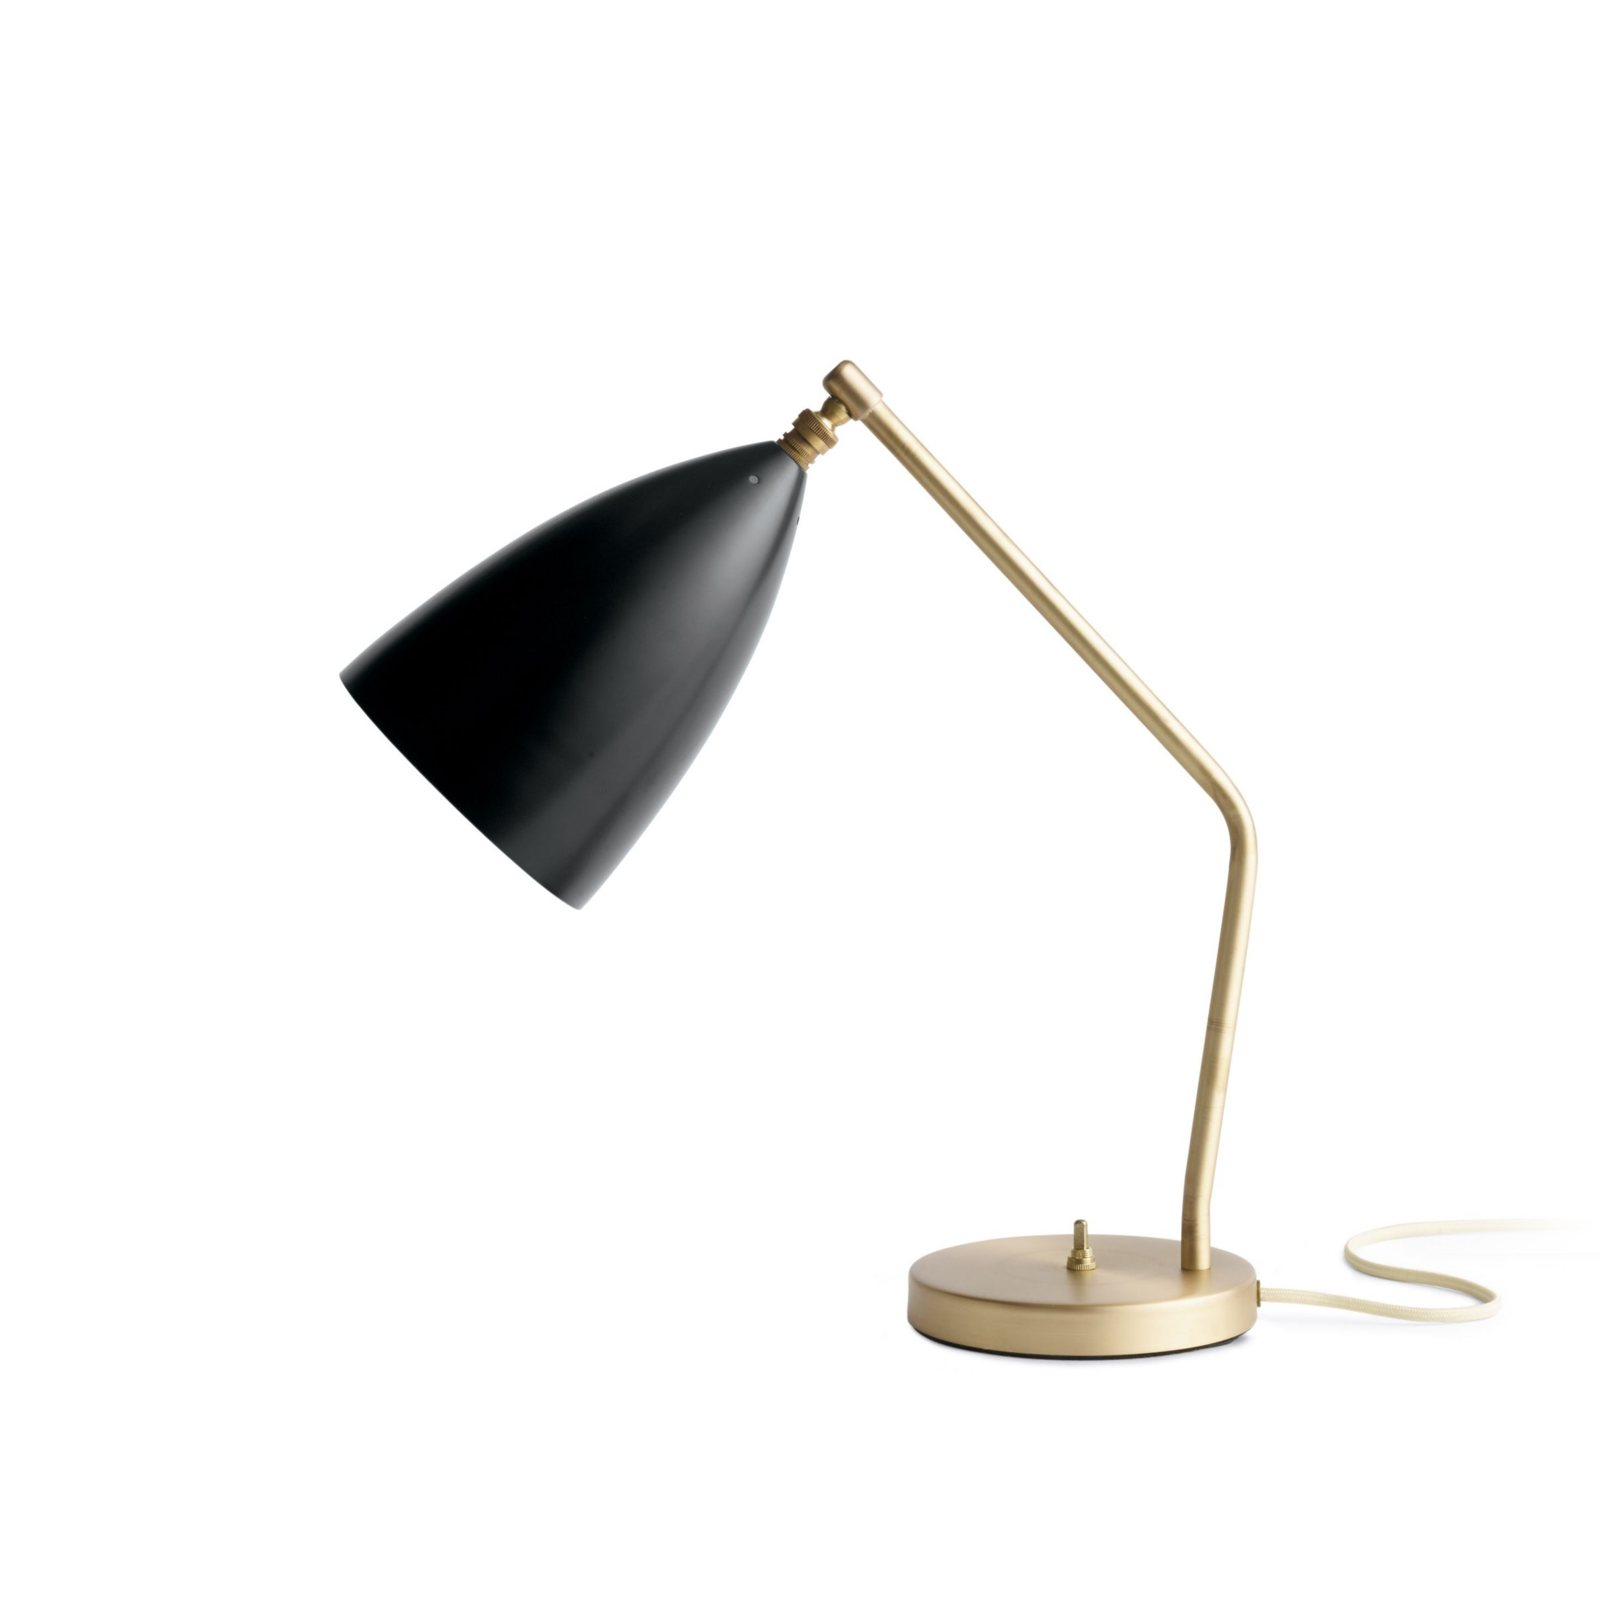 grossman lighting. Grossman Gräshoppa Task Table Lamp, Jet Black, Side View. Lighting